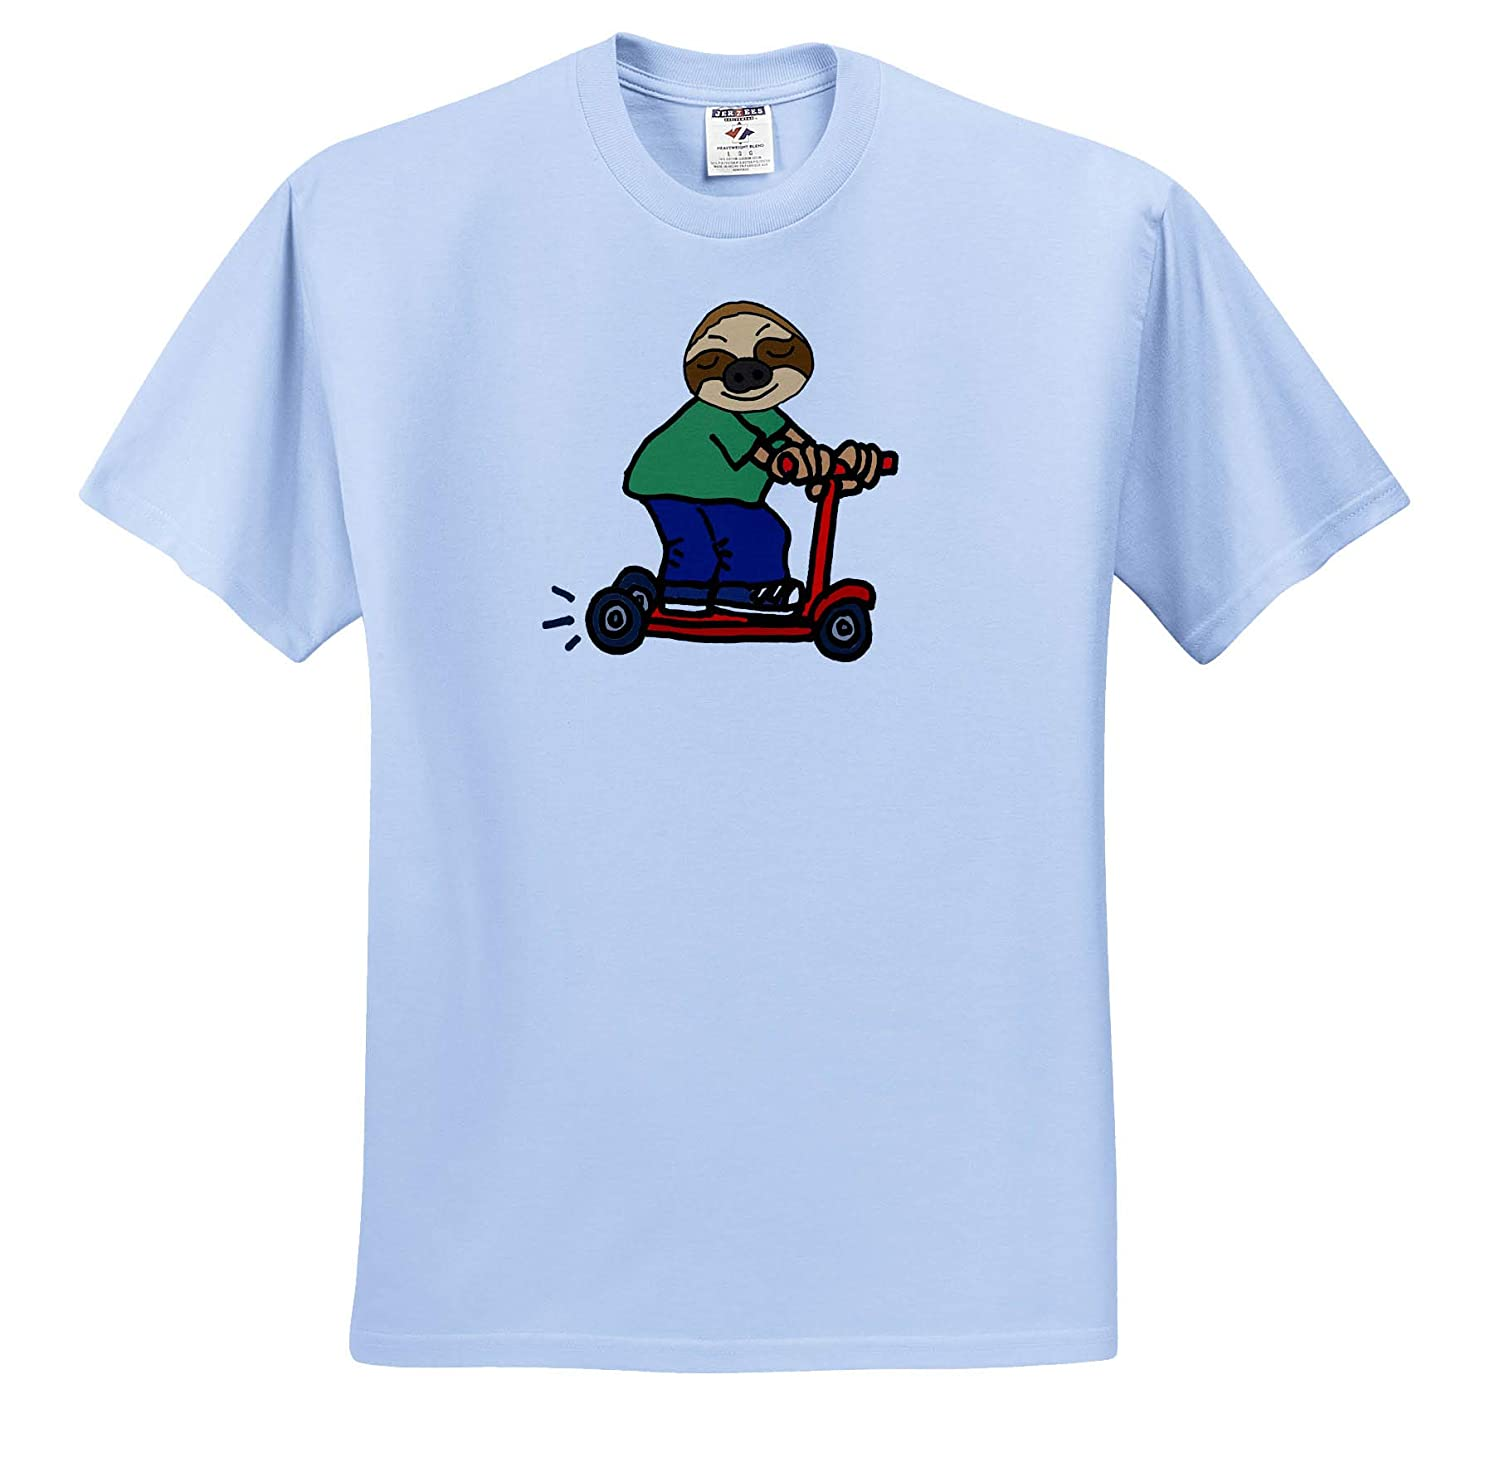 3dRose All Smiles Art at The Beach ts/_317718 Adult T-Shirt XL Funny Cute Sloth Riding Red Electric Scooter Cartoon